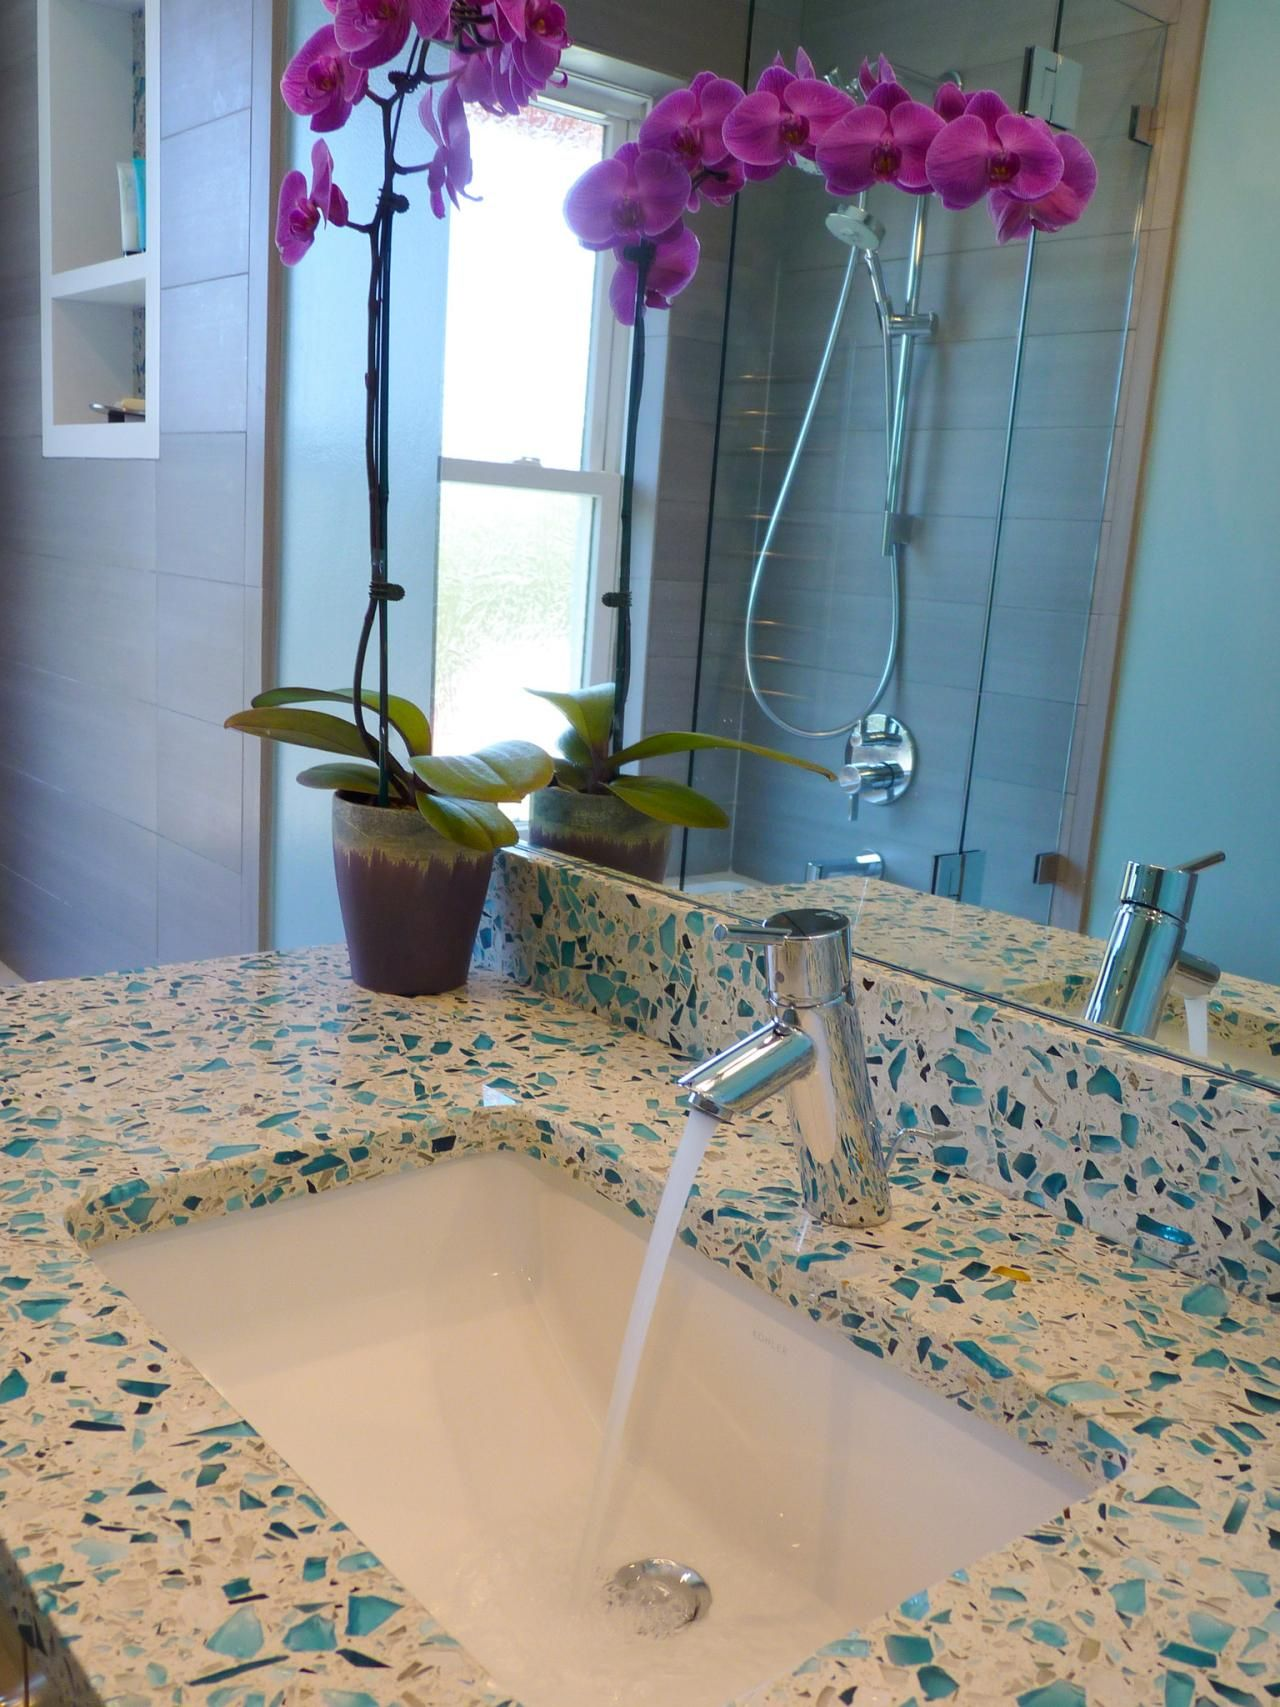 In This Caribbean Inspired Bathroom, Blues And Grays Are Used To Create A  Cool, Relaxed Atmosphere. The Unique Countertop Is Made From Recycled Glau2026